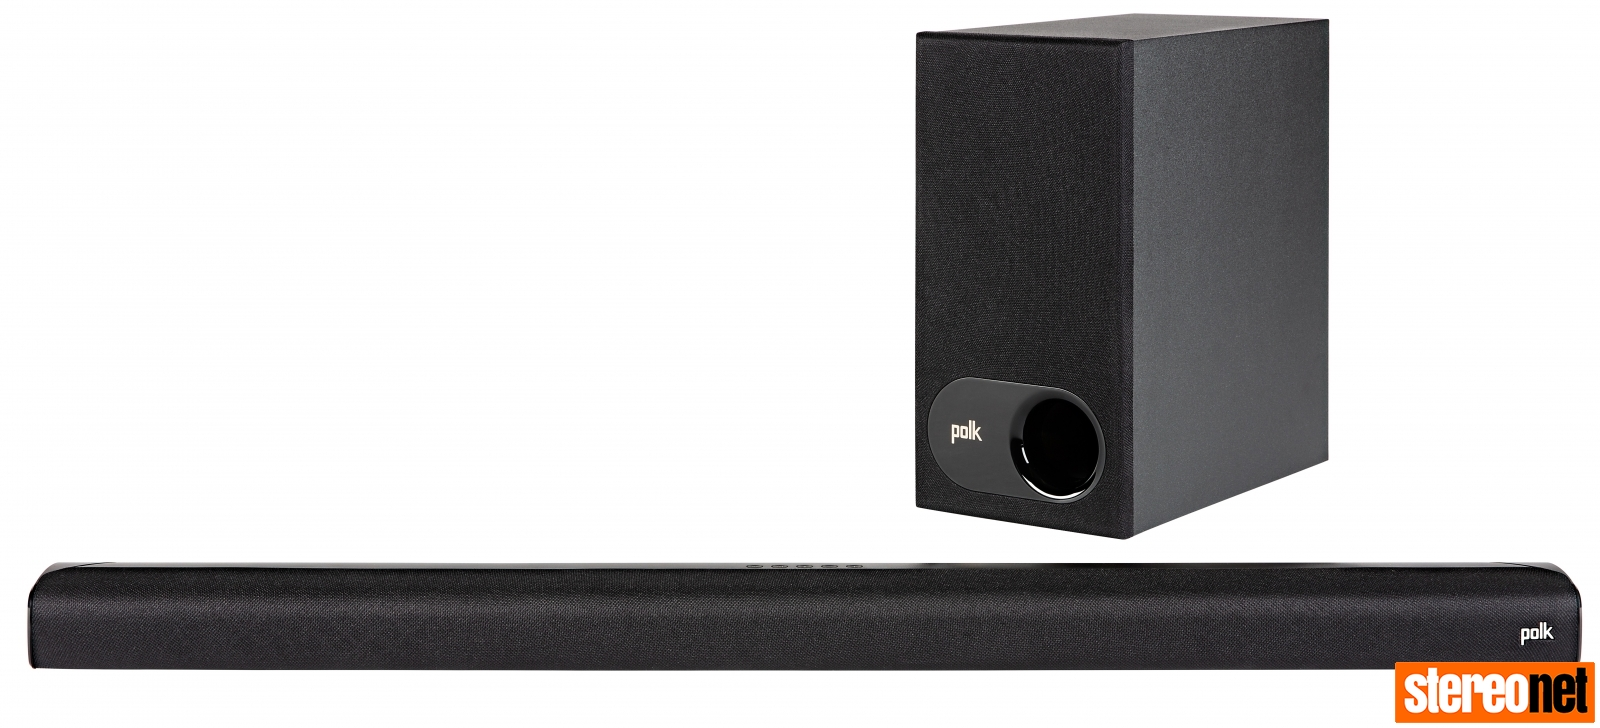 Polk Signa S2 soundbar and woofer